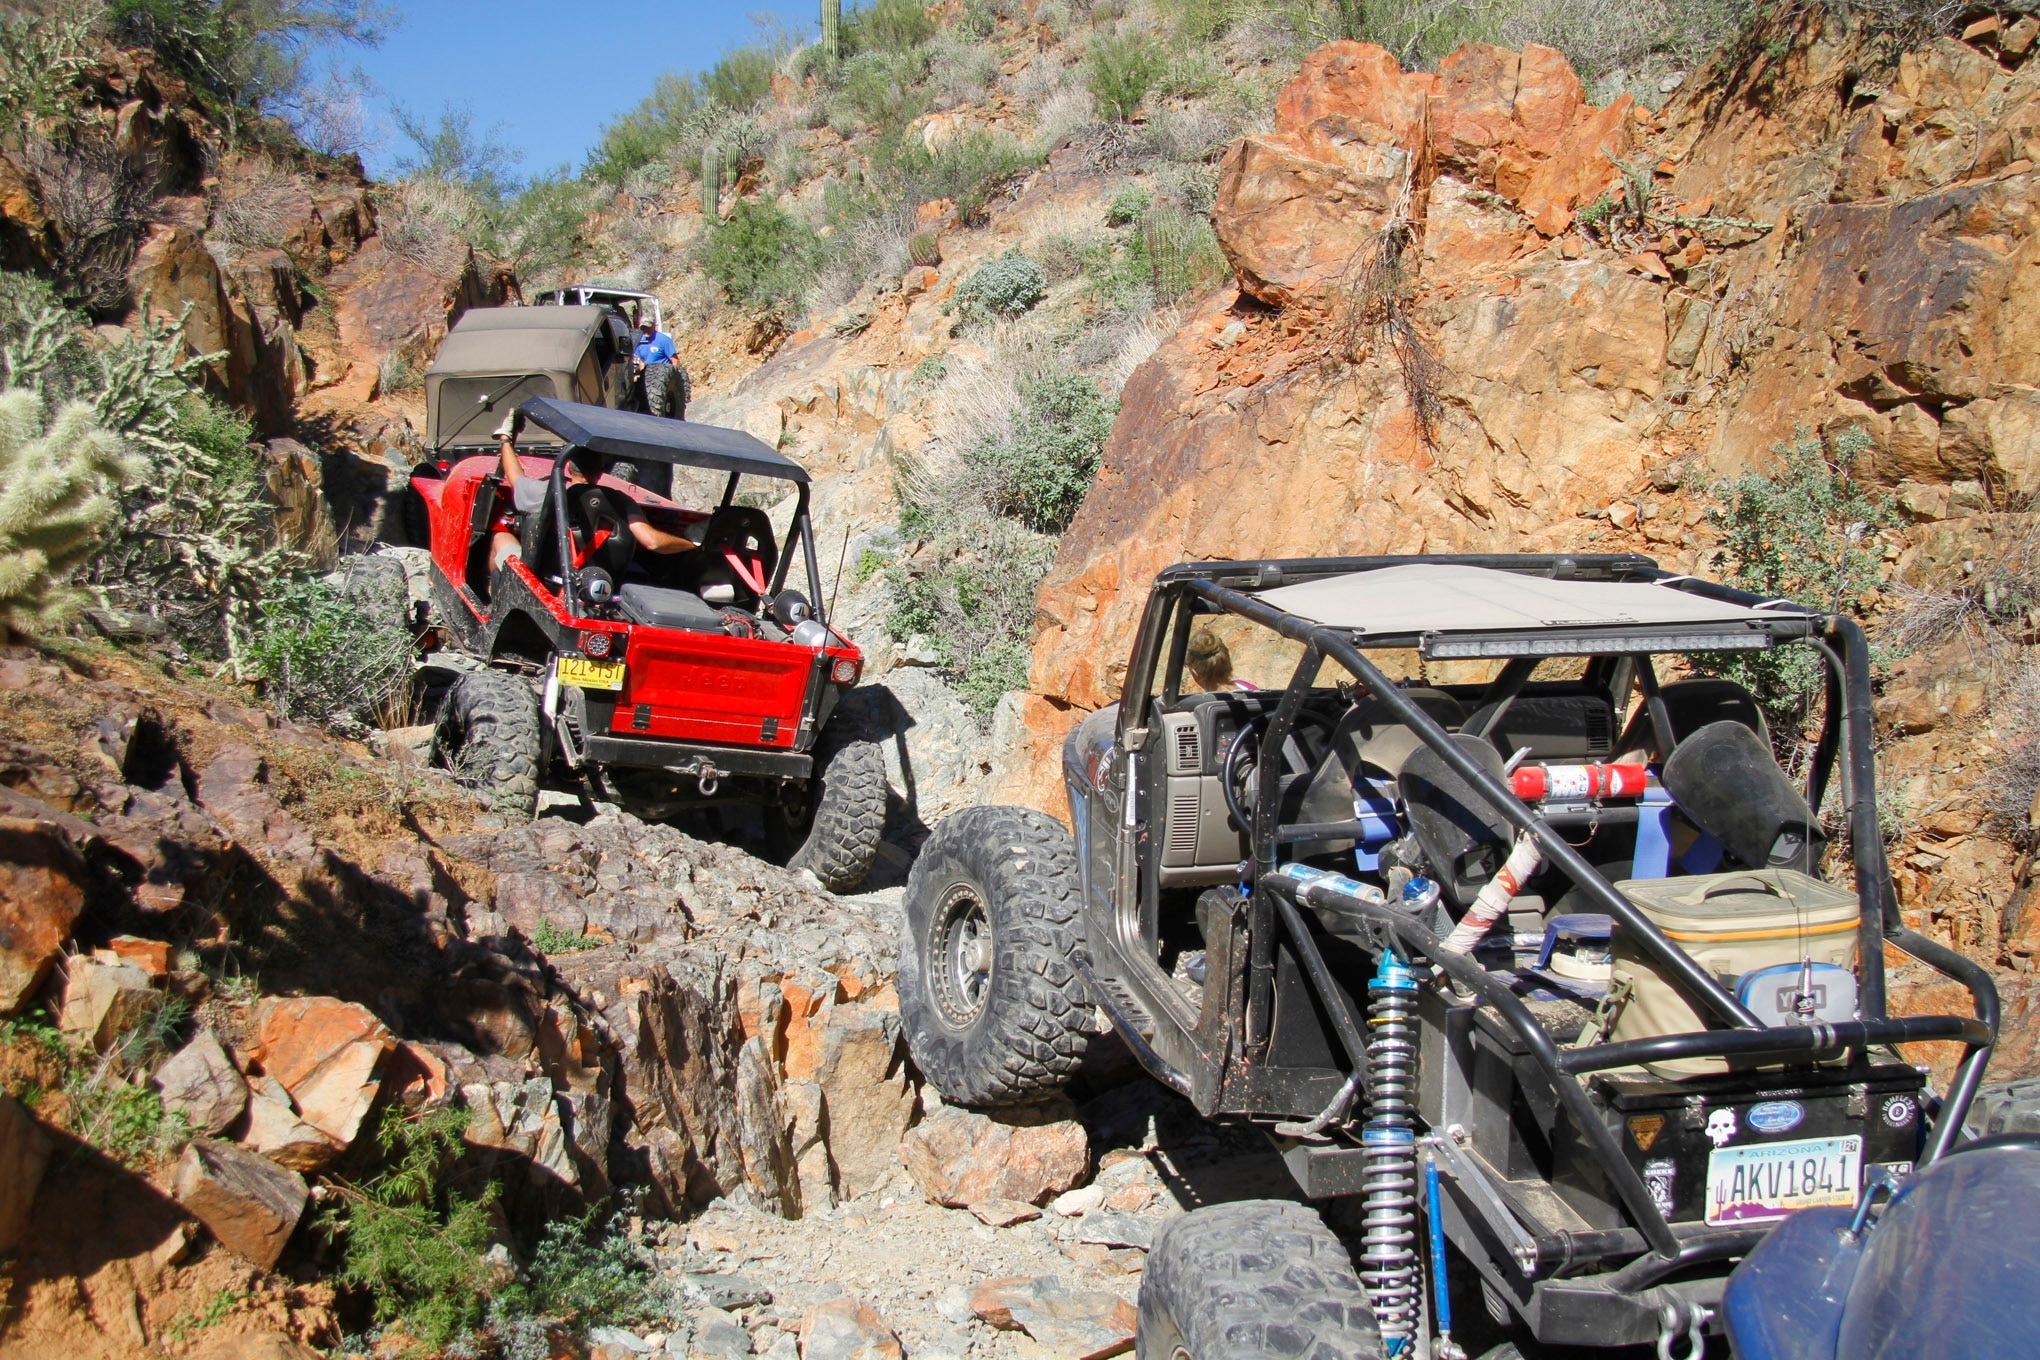 Like many southern Arizona rock trails, Collateral Damage meanders its way up a narrow wash that climbs in elevation, increasing the difficulty factor.